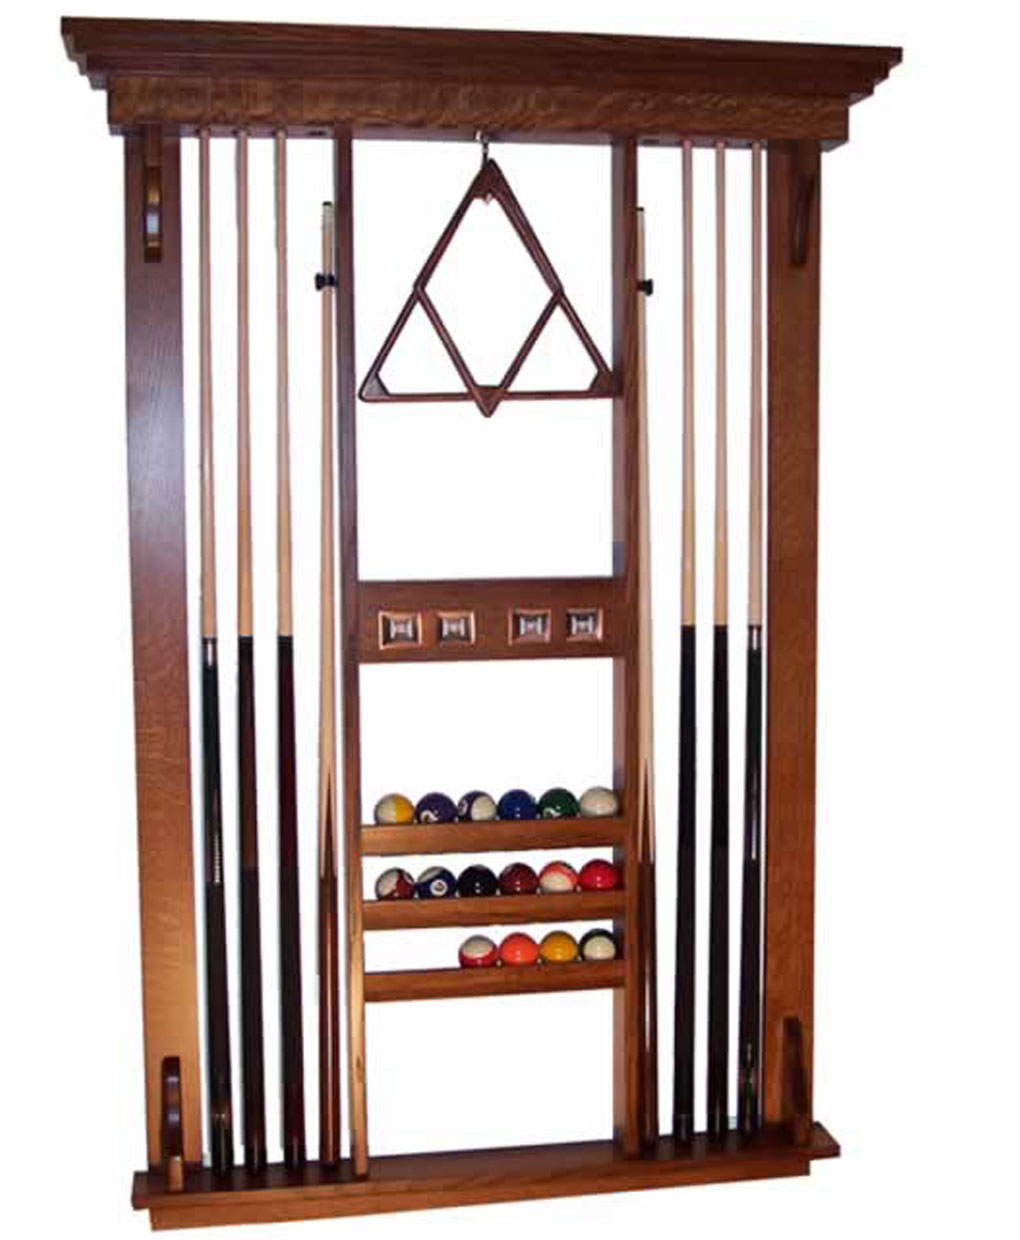 Deluxe Pool Table Accessories Wall Rack Amish Direct